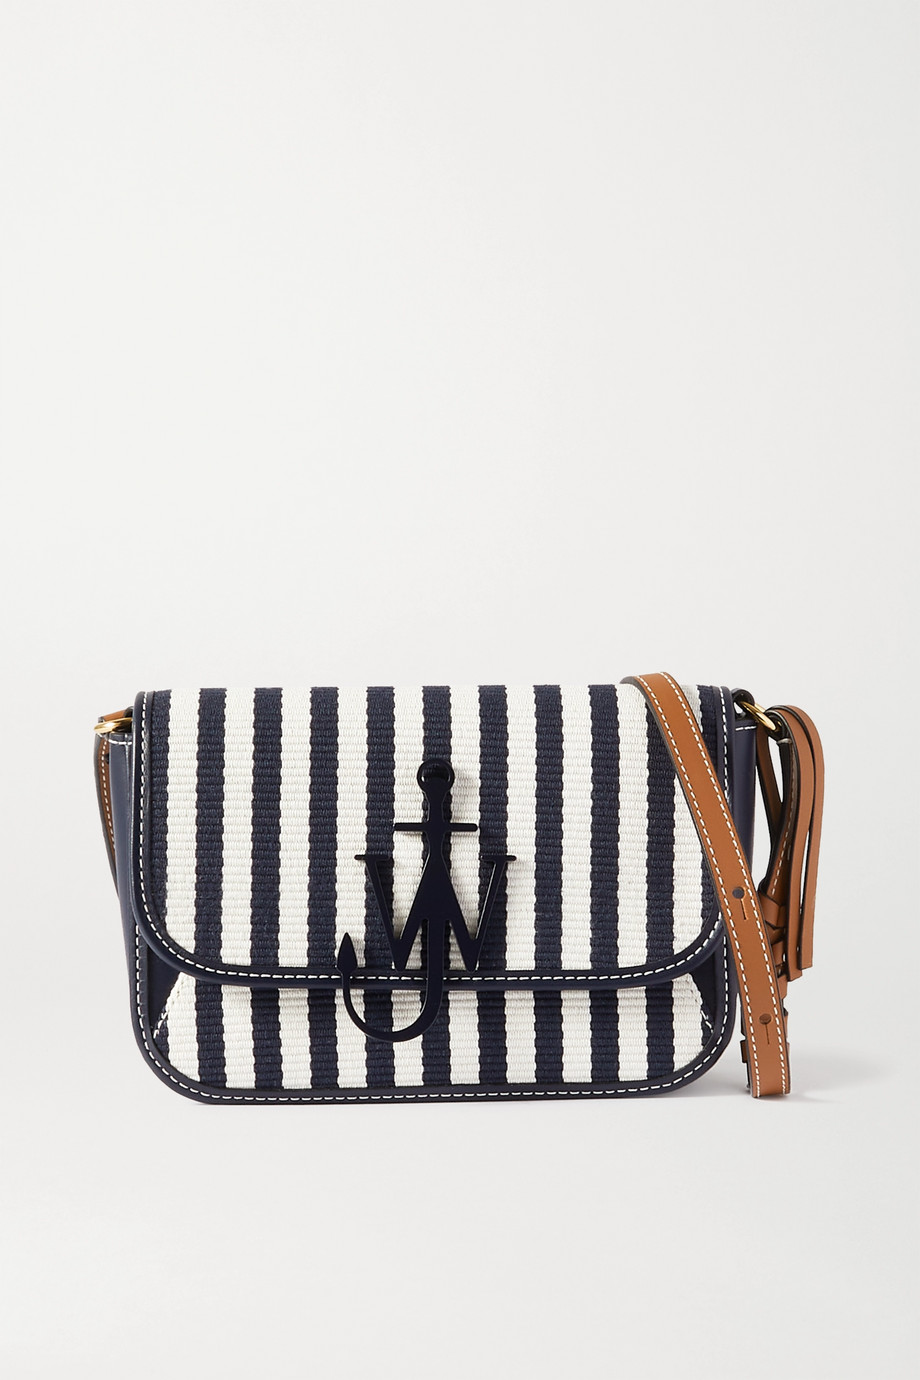 JW Anderson Anchor Nano striped canvas and leather shoulder bag